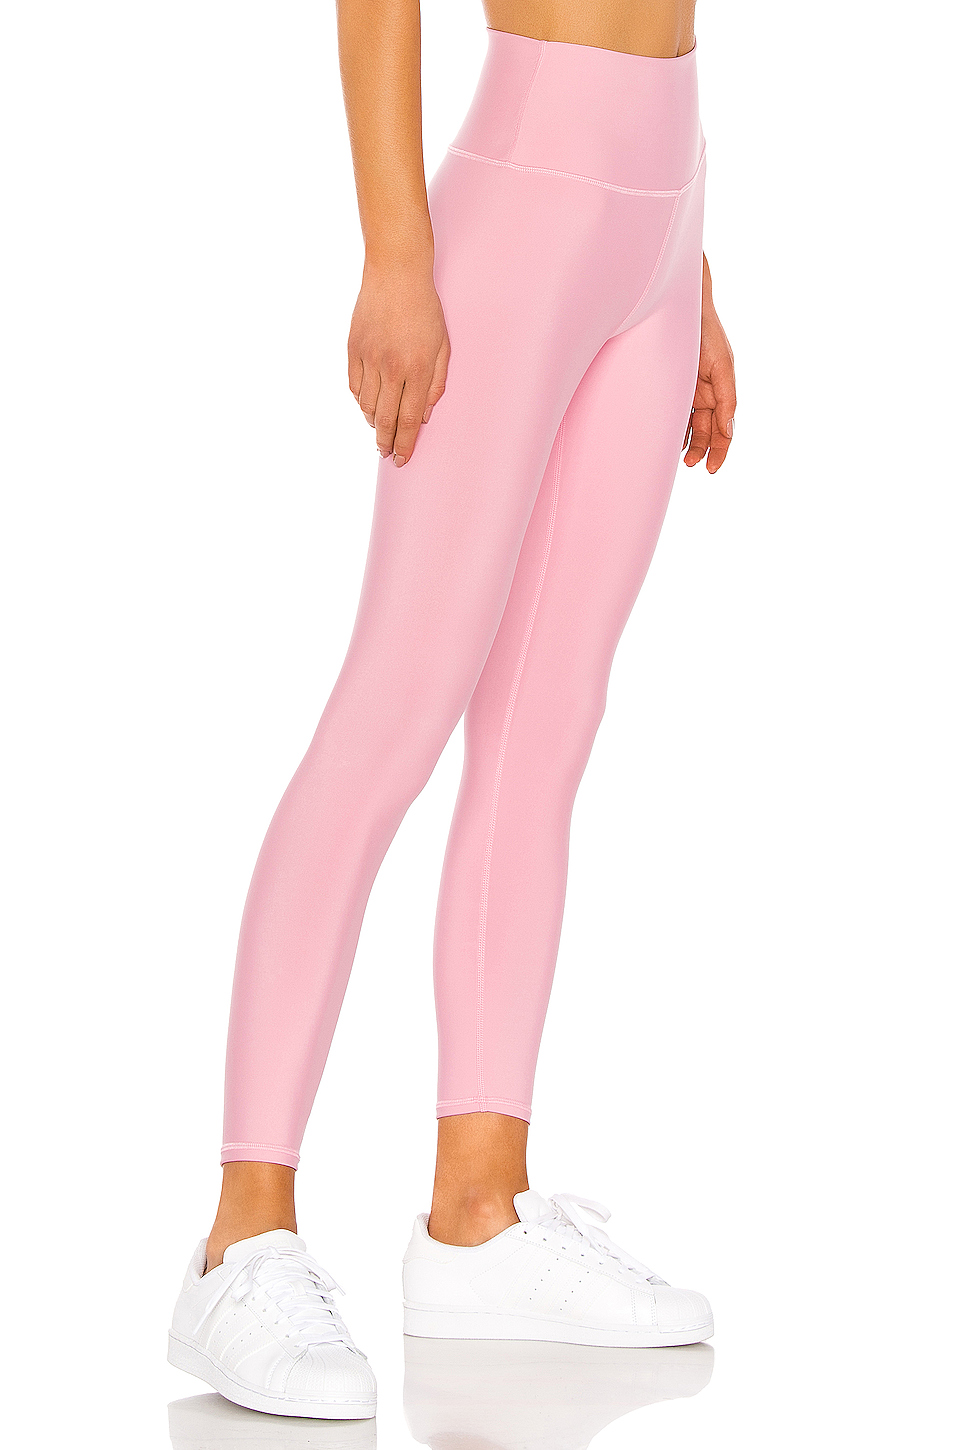 15b40f55e1a13f Buy Original alo 7/8 High Waist Airlift Legging at Indonesia | BOBOBOBO